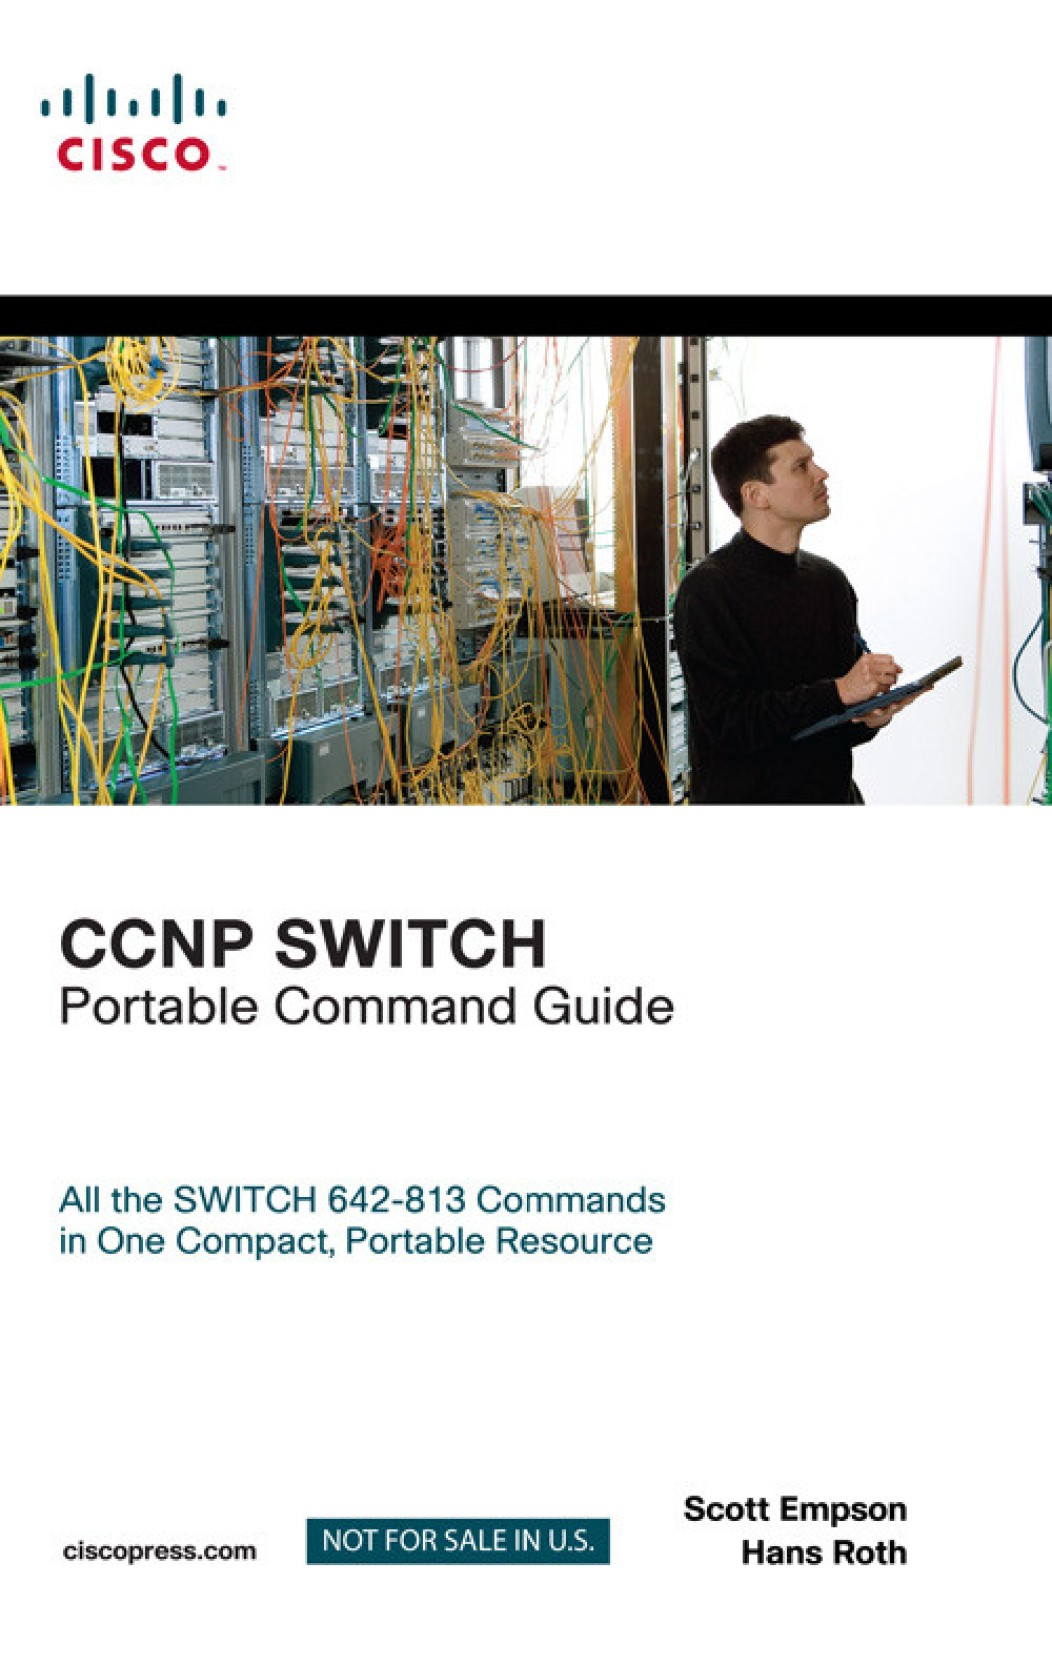 CCNP SWITCH Portable Command Guide. ADD TO CART